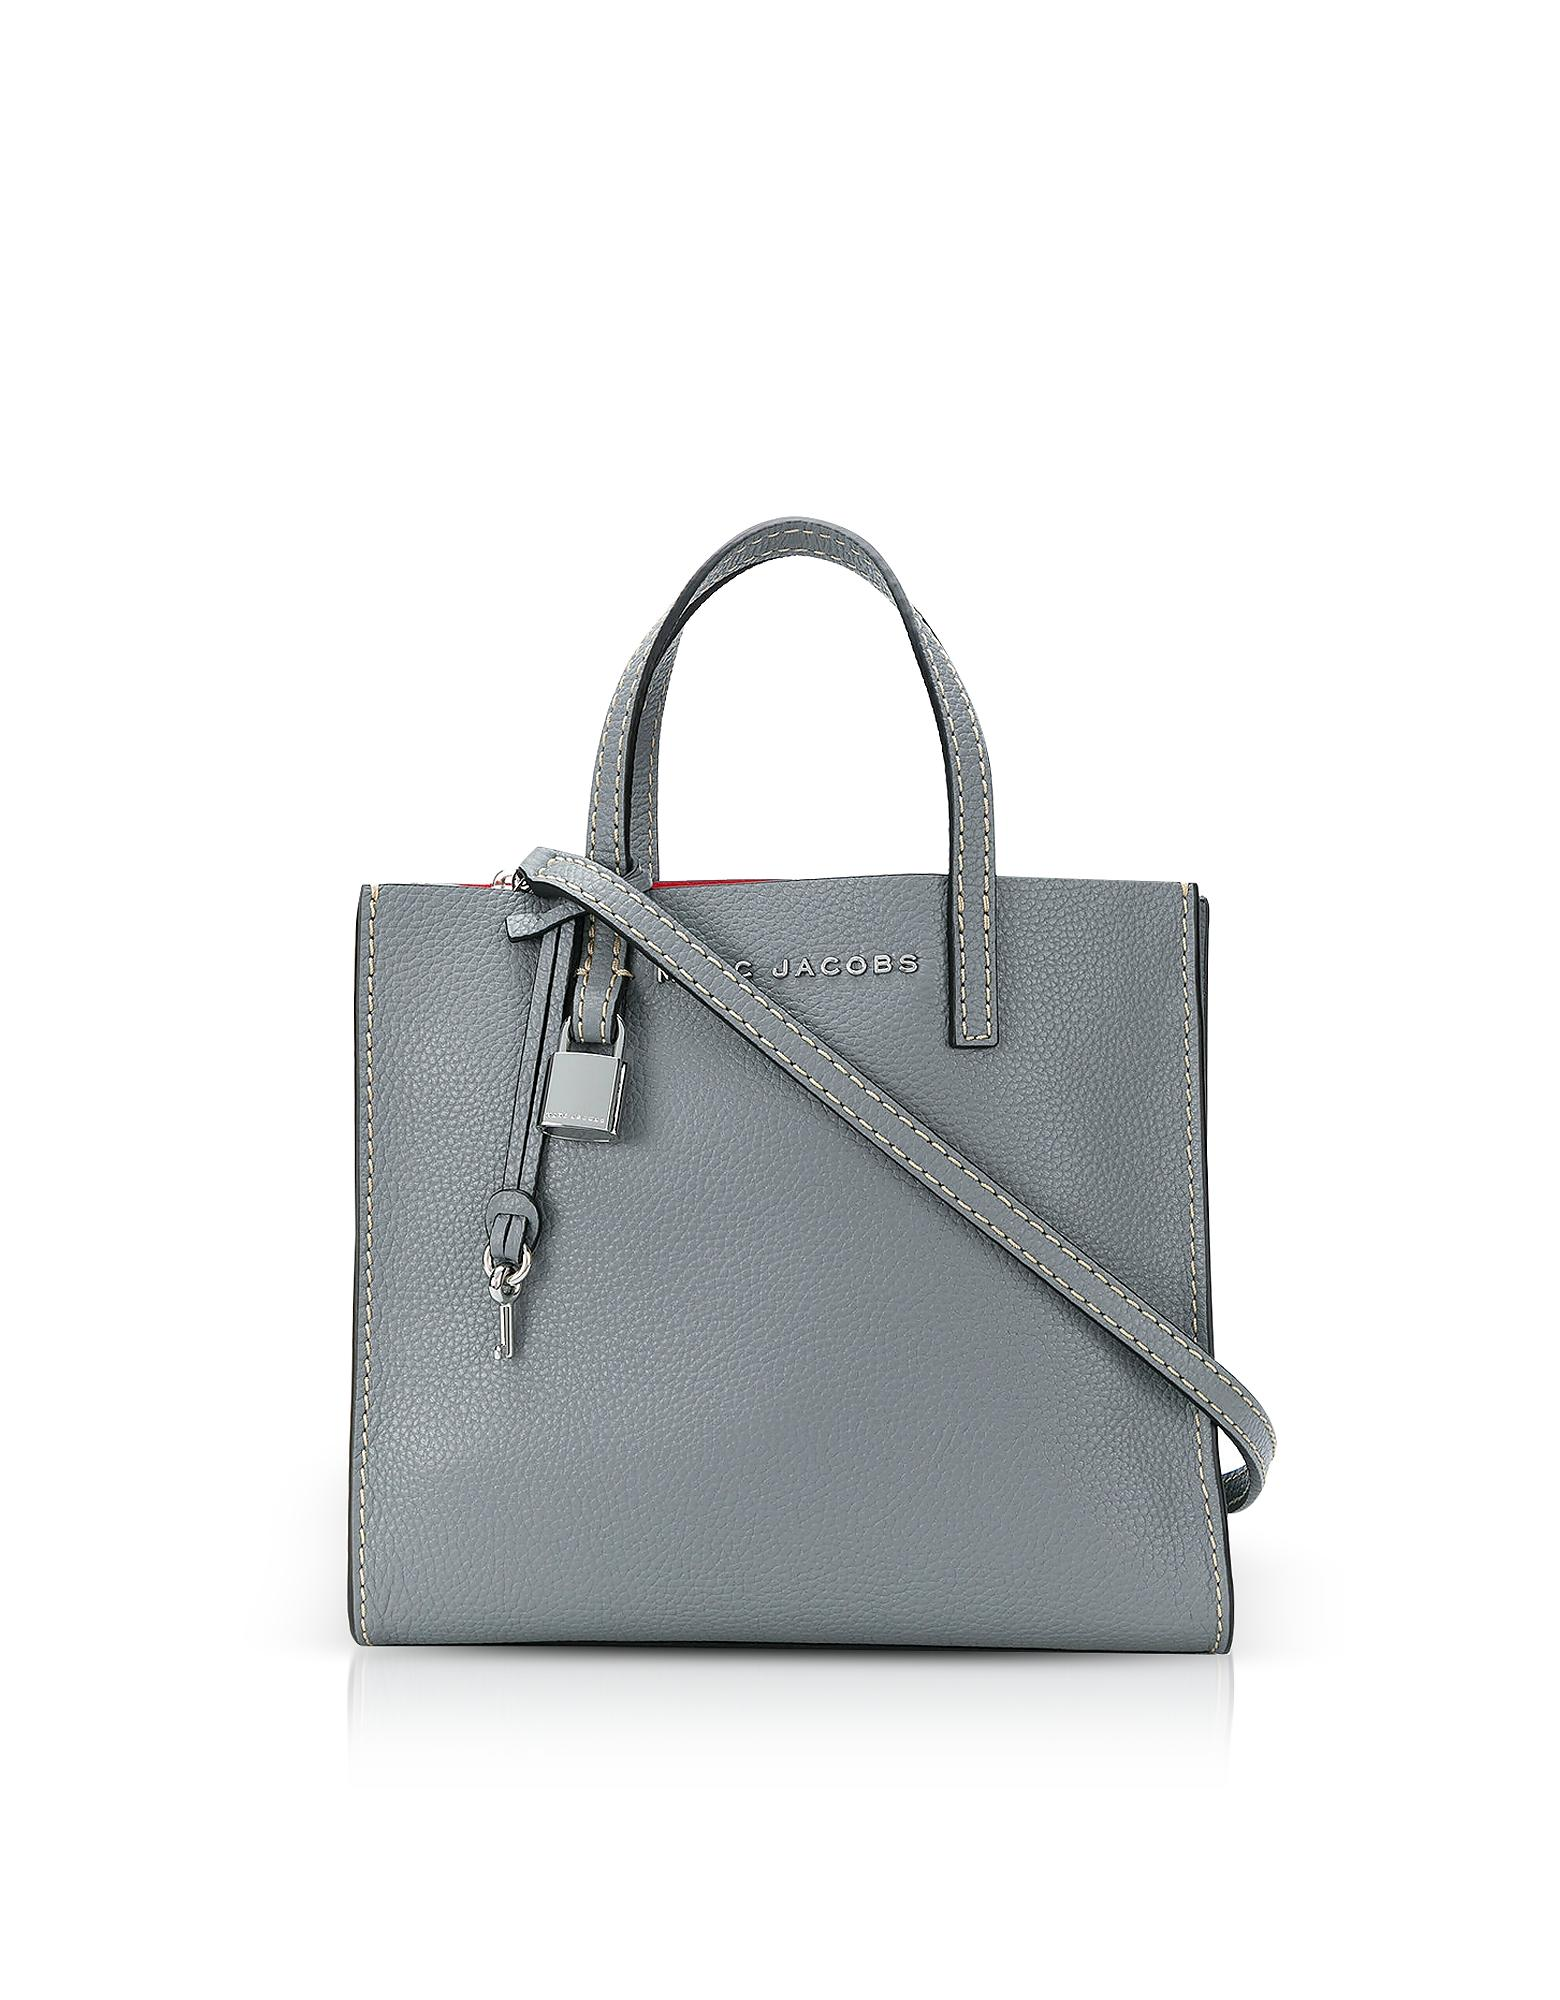 Lyst - Marc Jacobs Mini Grind Leather Tote in Black - Save ... a827e09829cb